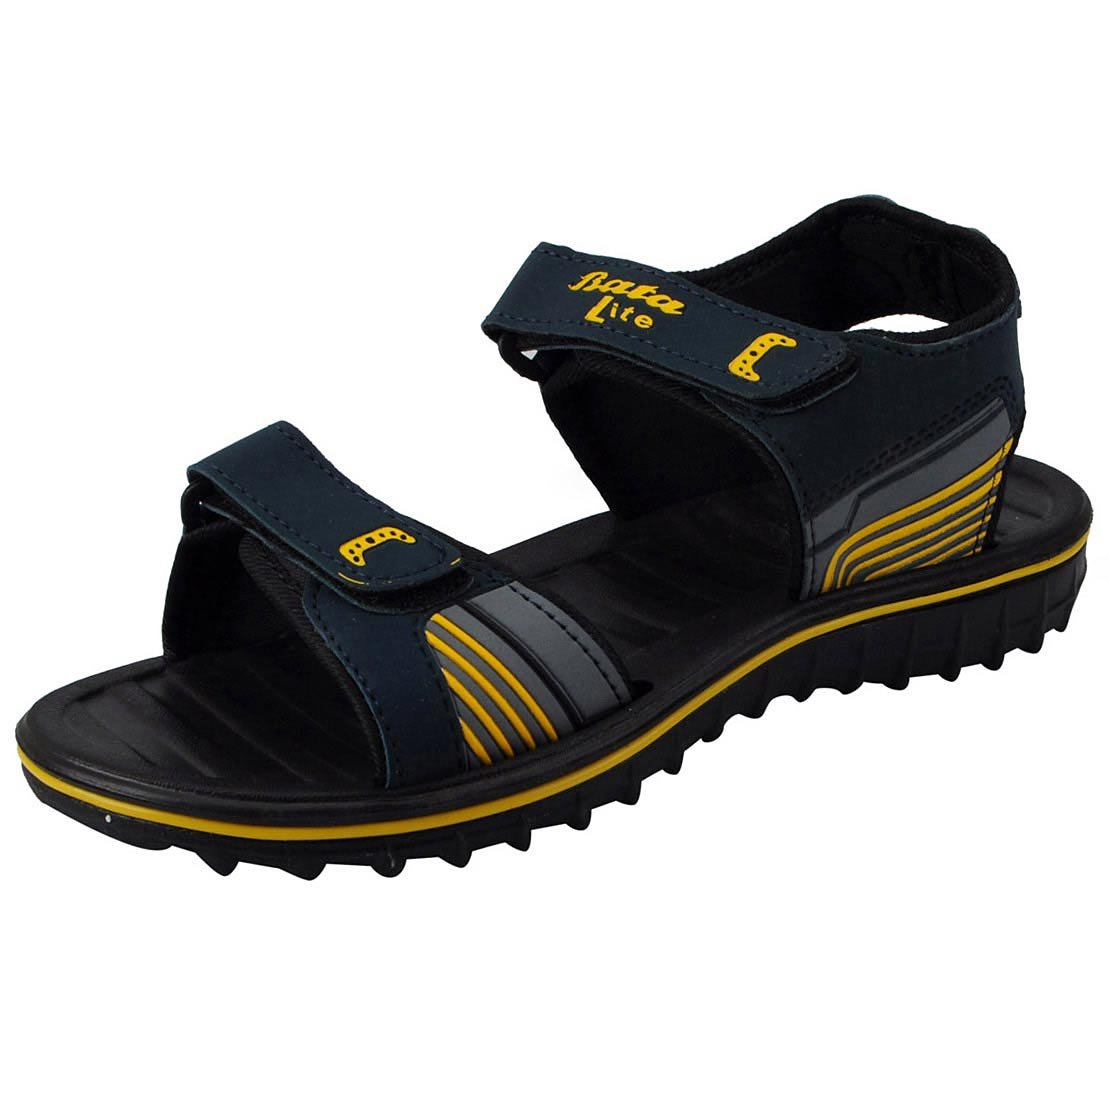 5f05810a570f BATA Men s Sandals  Buy Online at Low Prices in India - Amazon.in